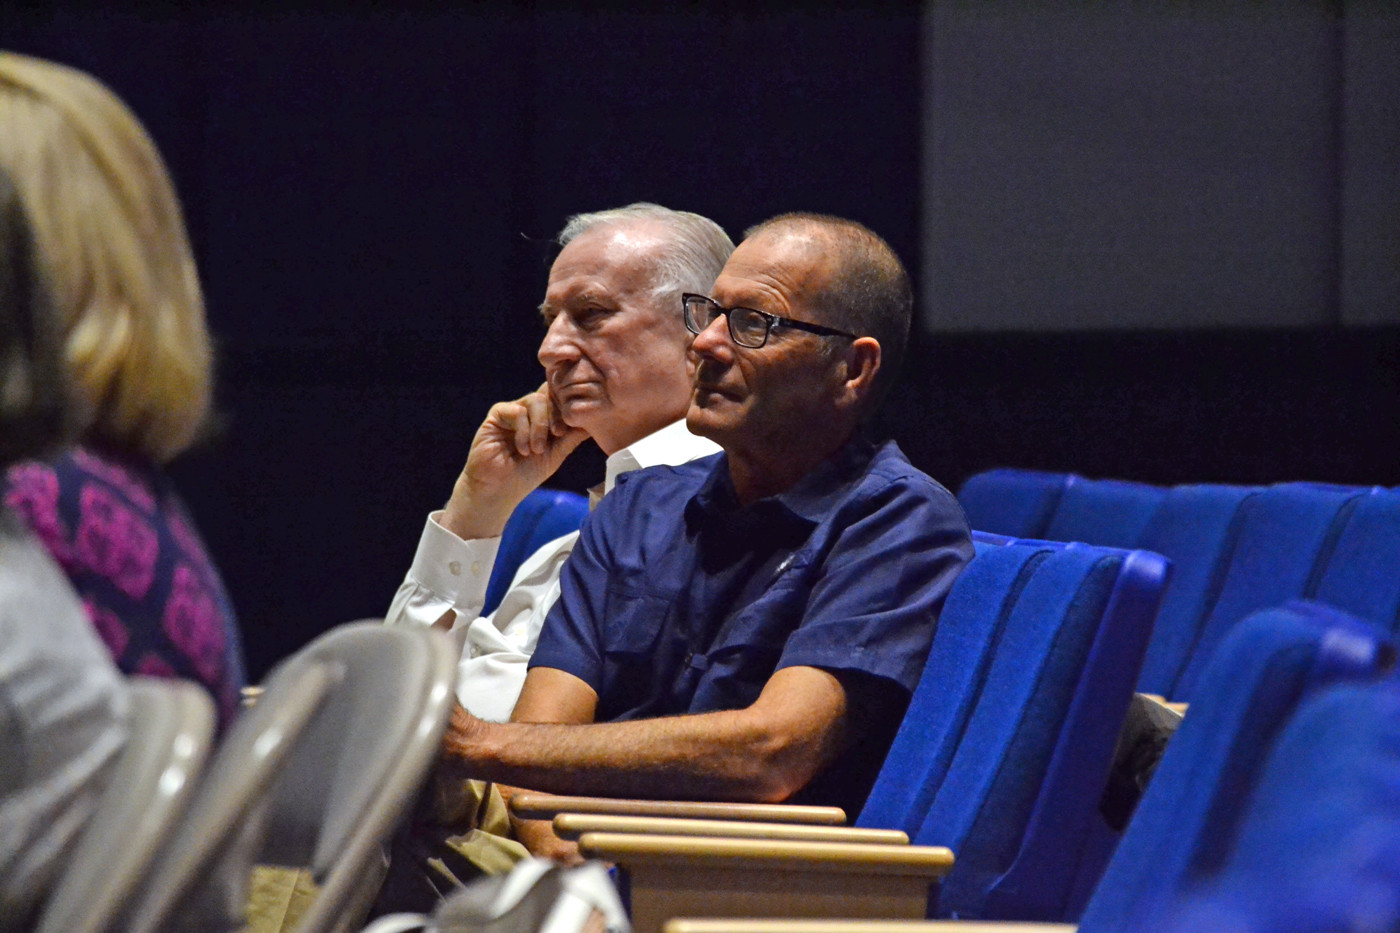 BEHIND THE NUMBERS: Thomas Conlon (left) and Robert Hicks seated at the Tuesday night meeting of the School Committee prior to Hicks giving his report on the school department's program audit.